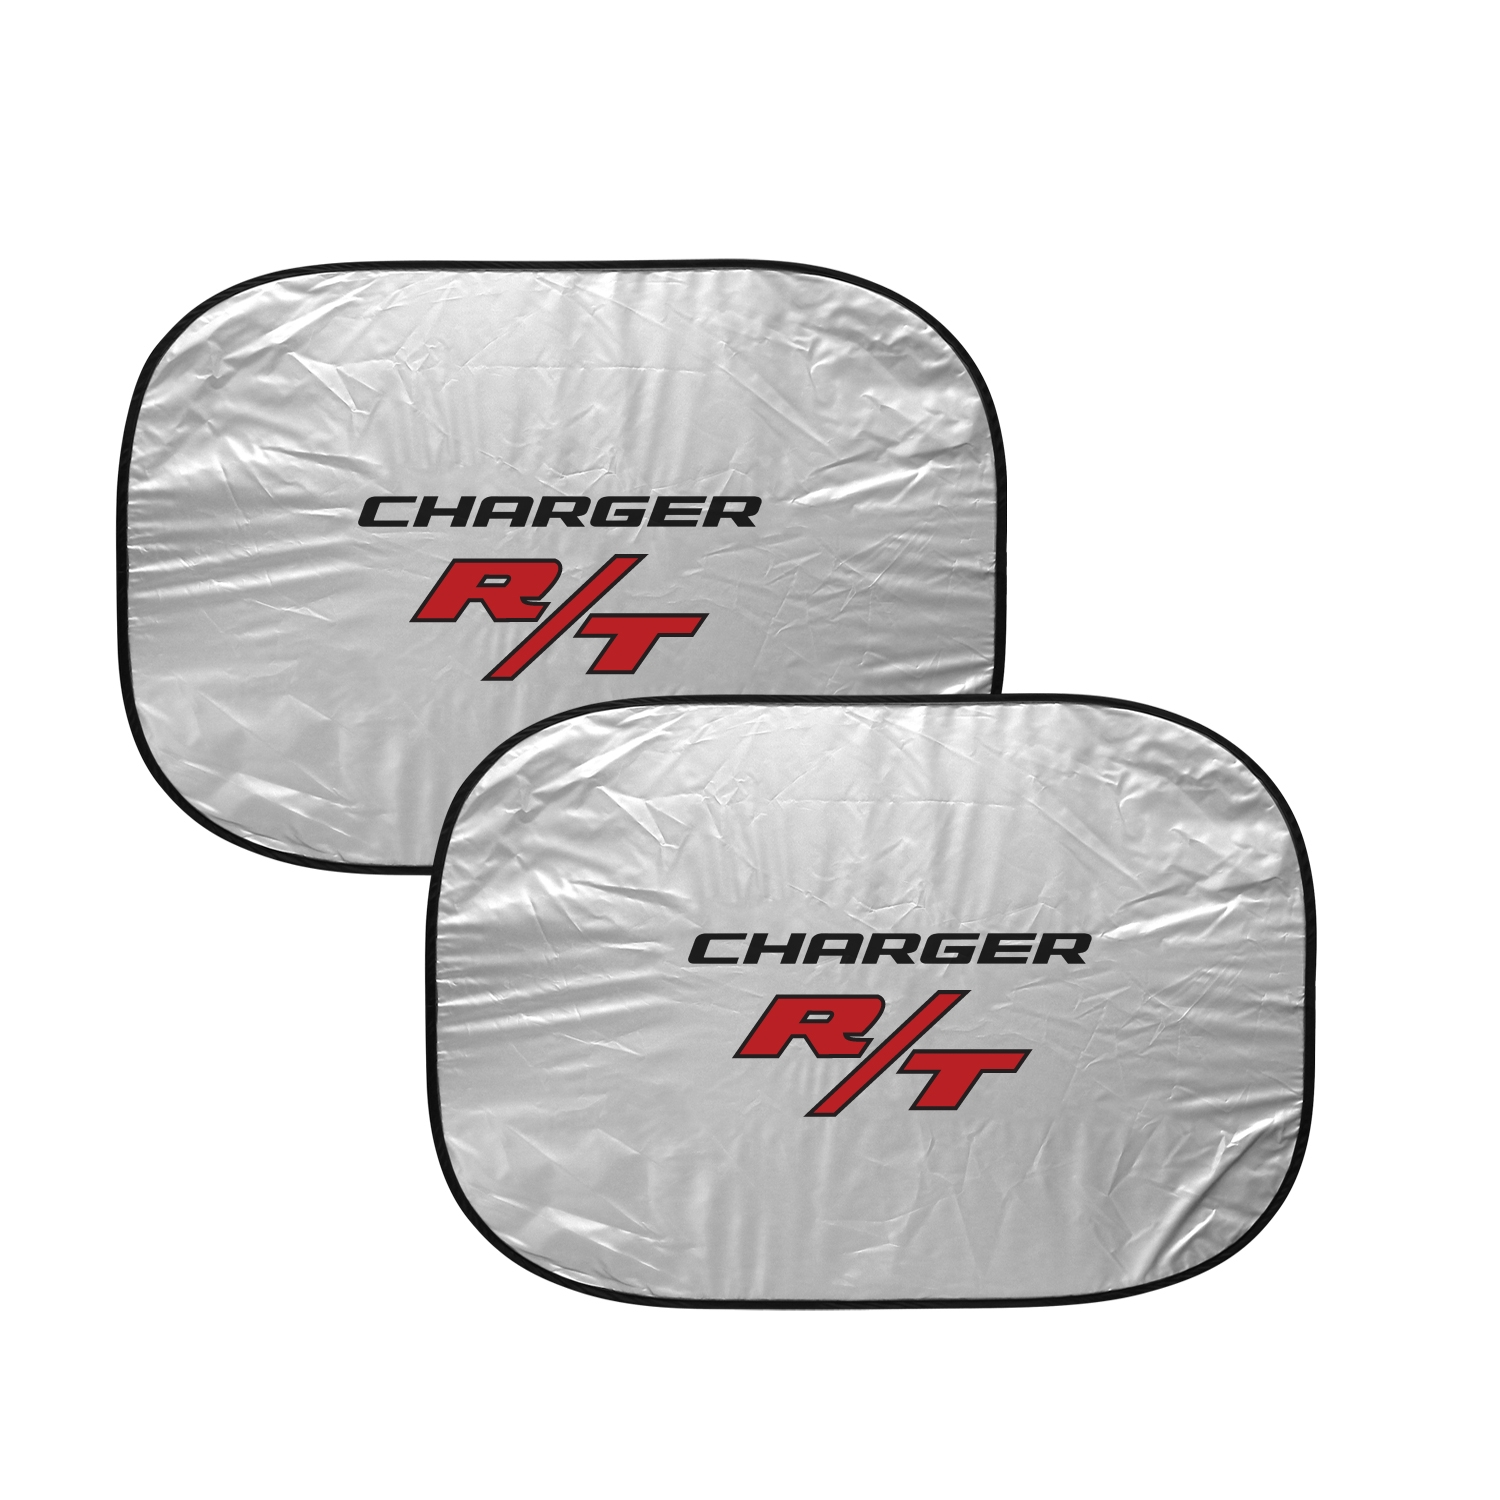 "Dodge Charger R/T Logo Dual Panels 2-28"" W x 24"" L Easy Folding Windshield Sun Shade"